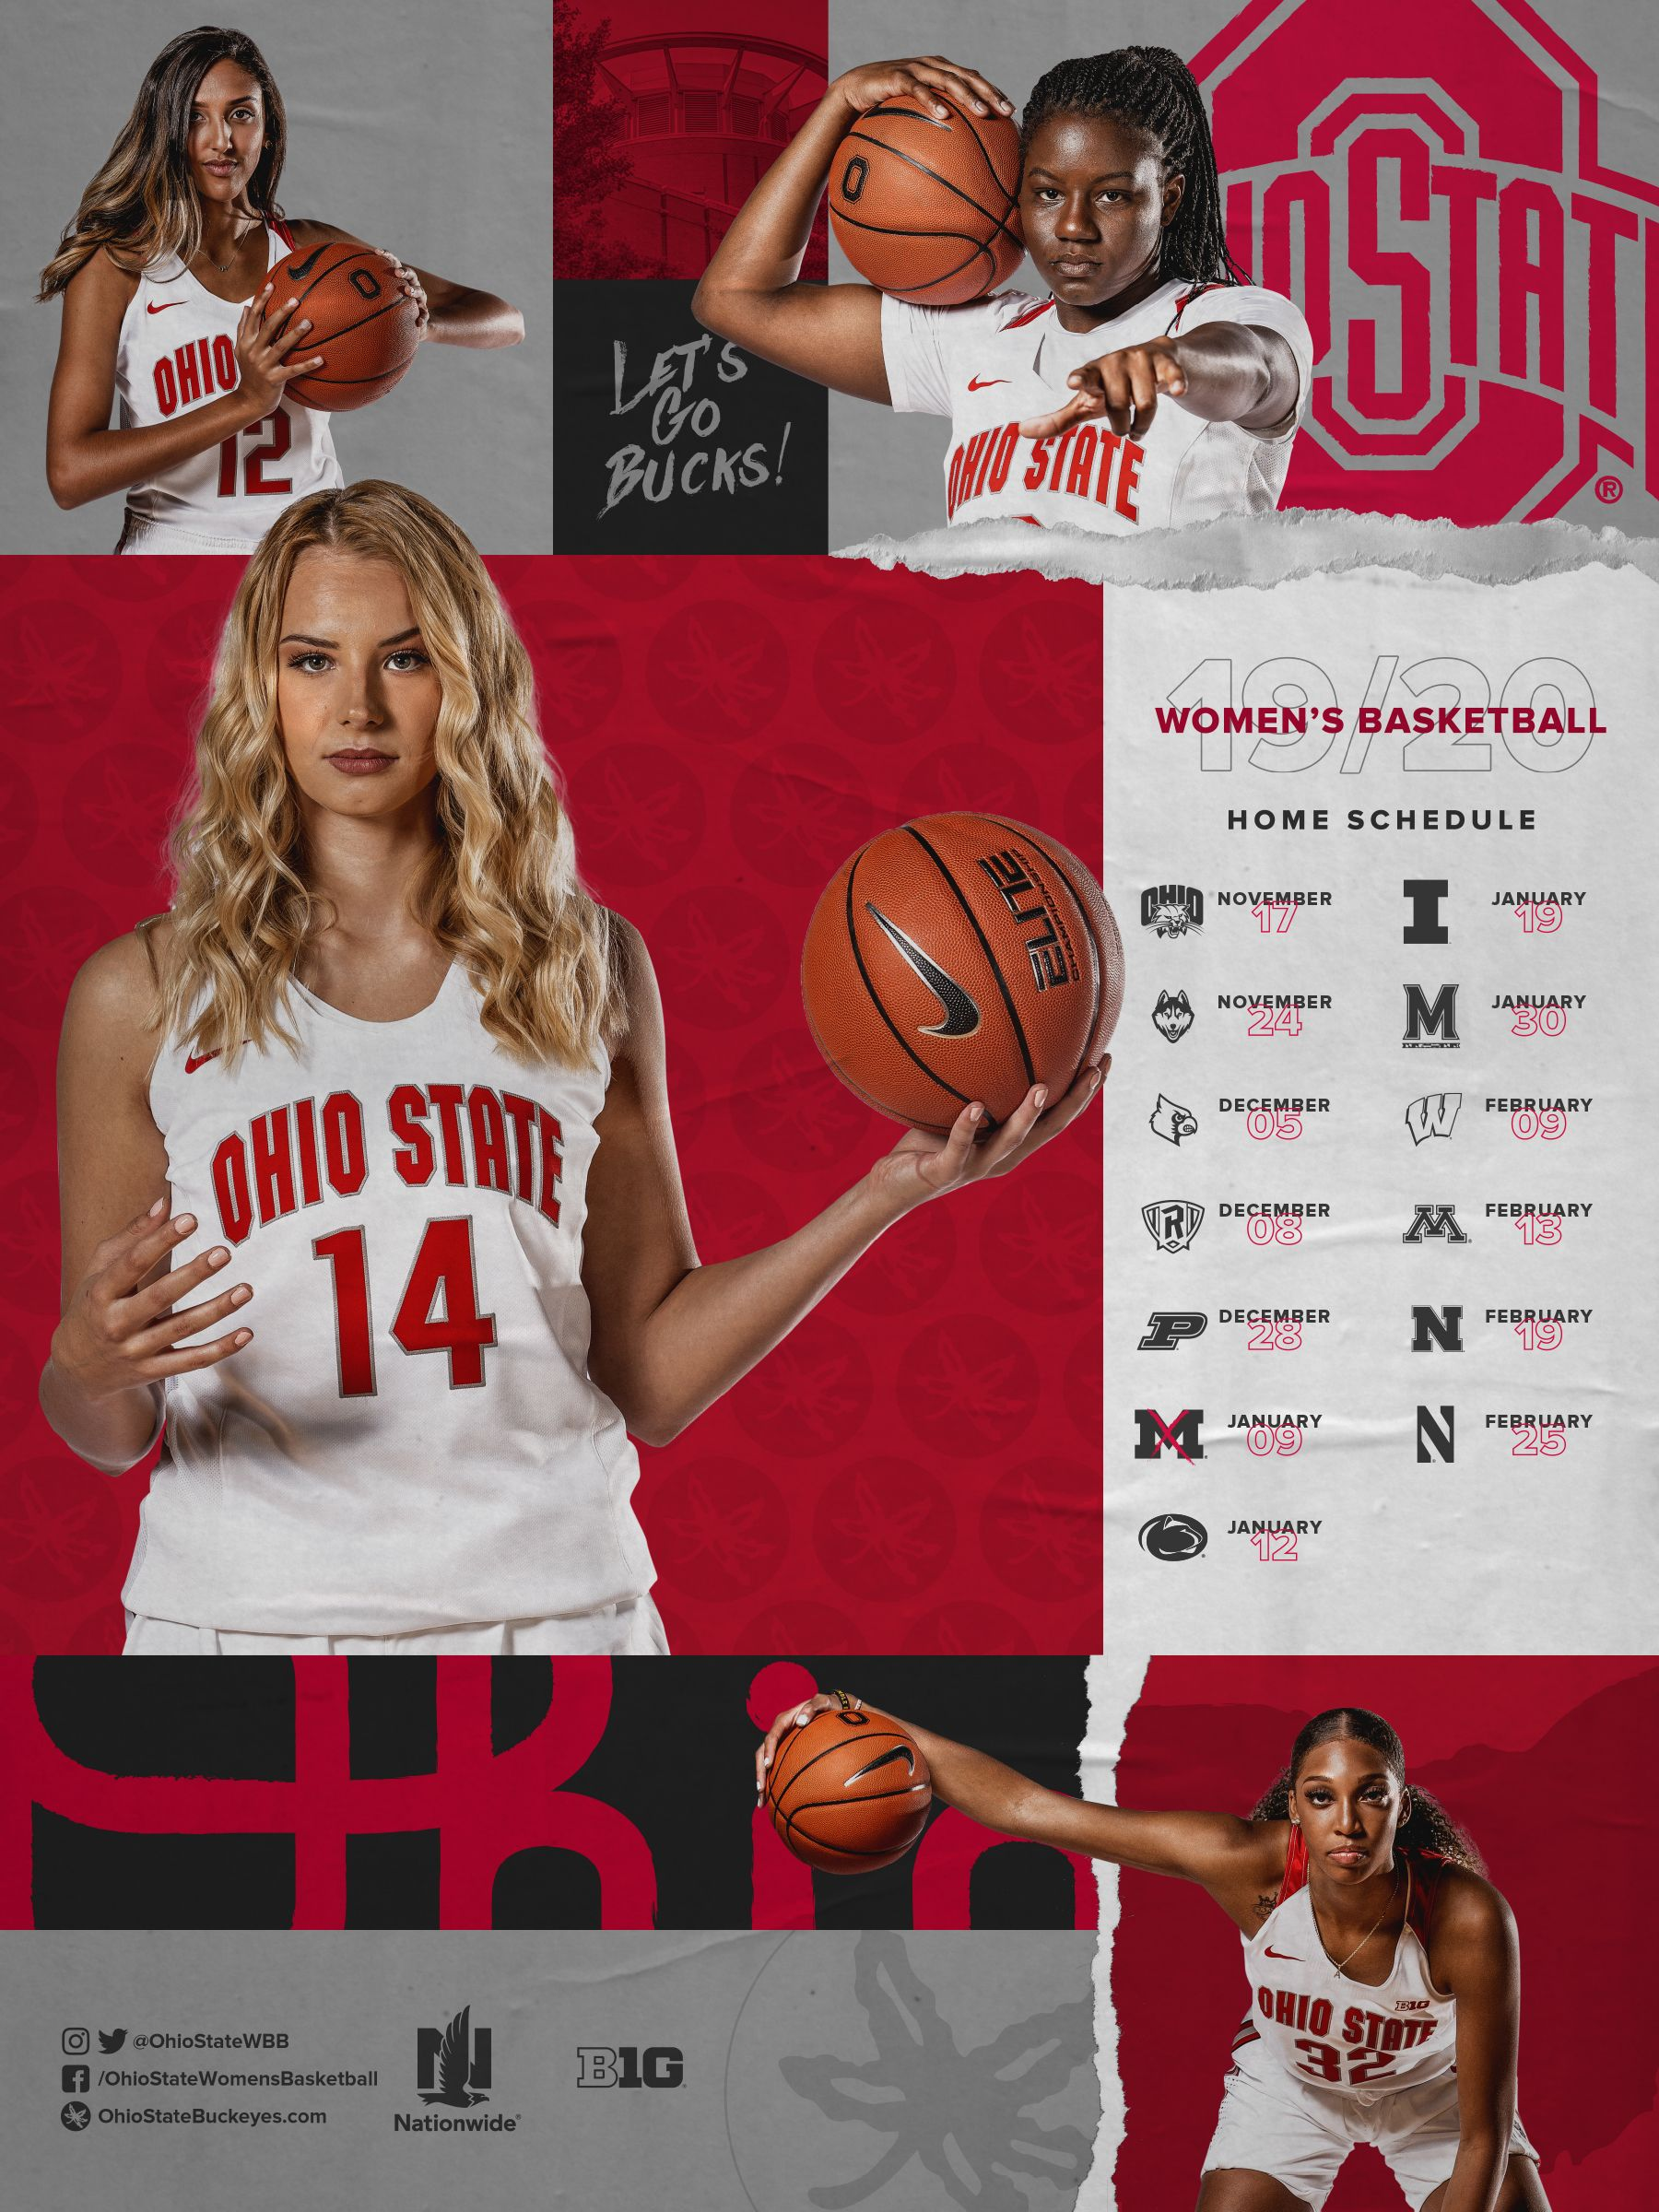 Schedule Posters in 2020 Ohio state, Ohio state buckeyes